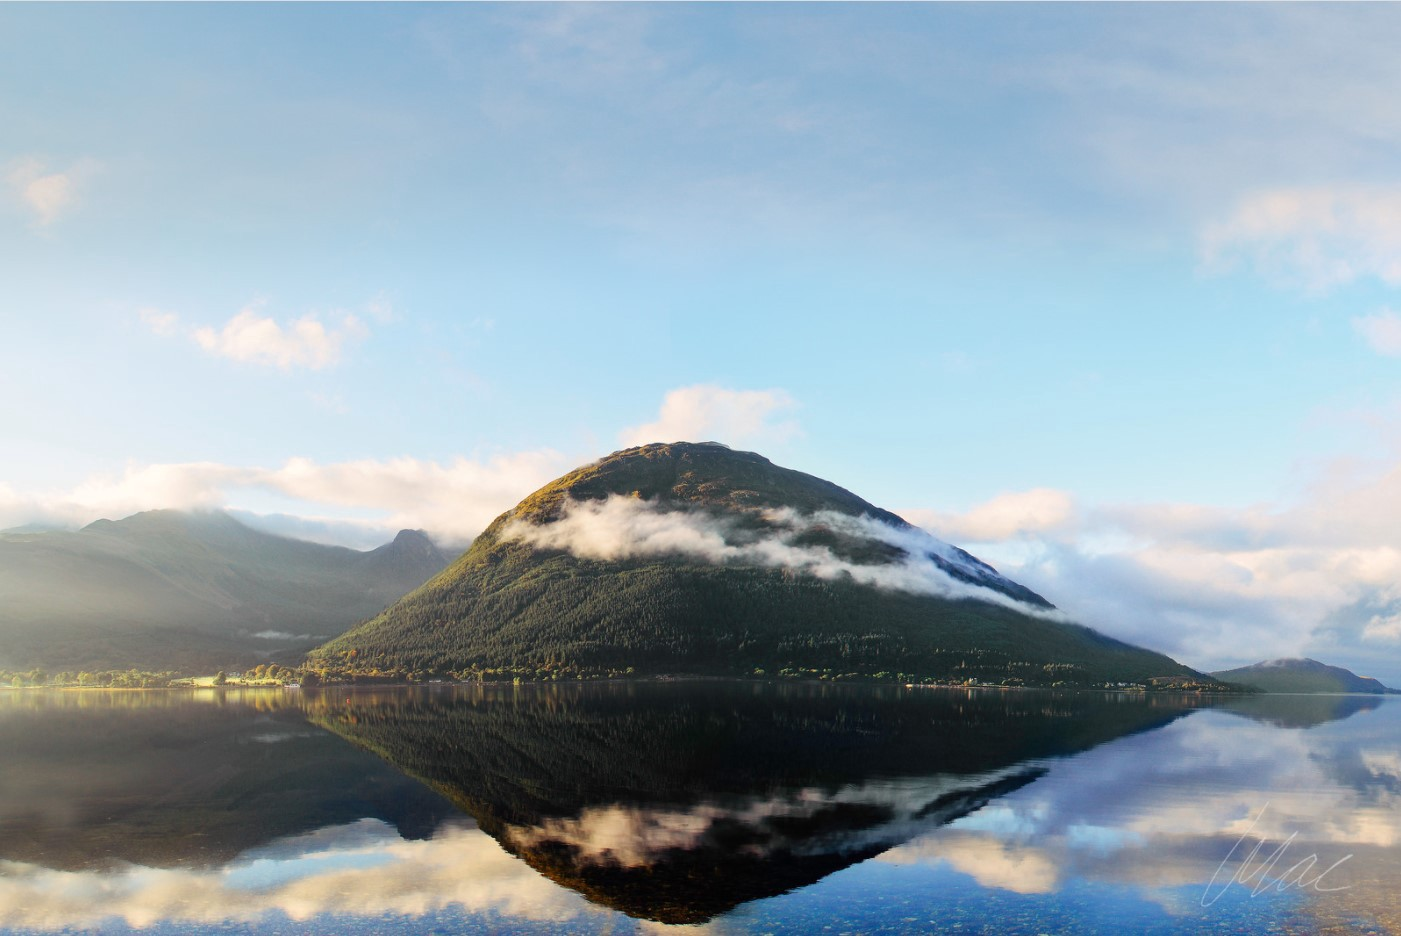 Mountain reflections at Loch Onich, Scotland